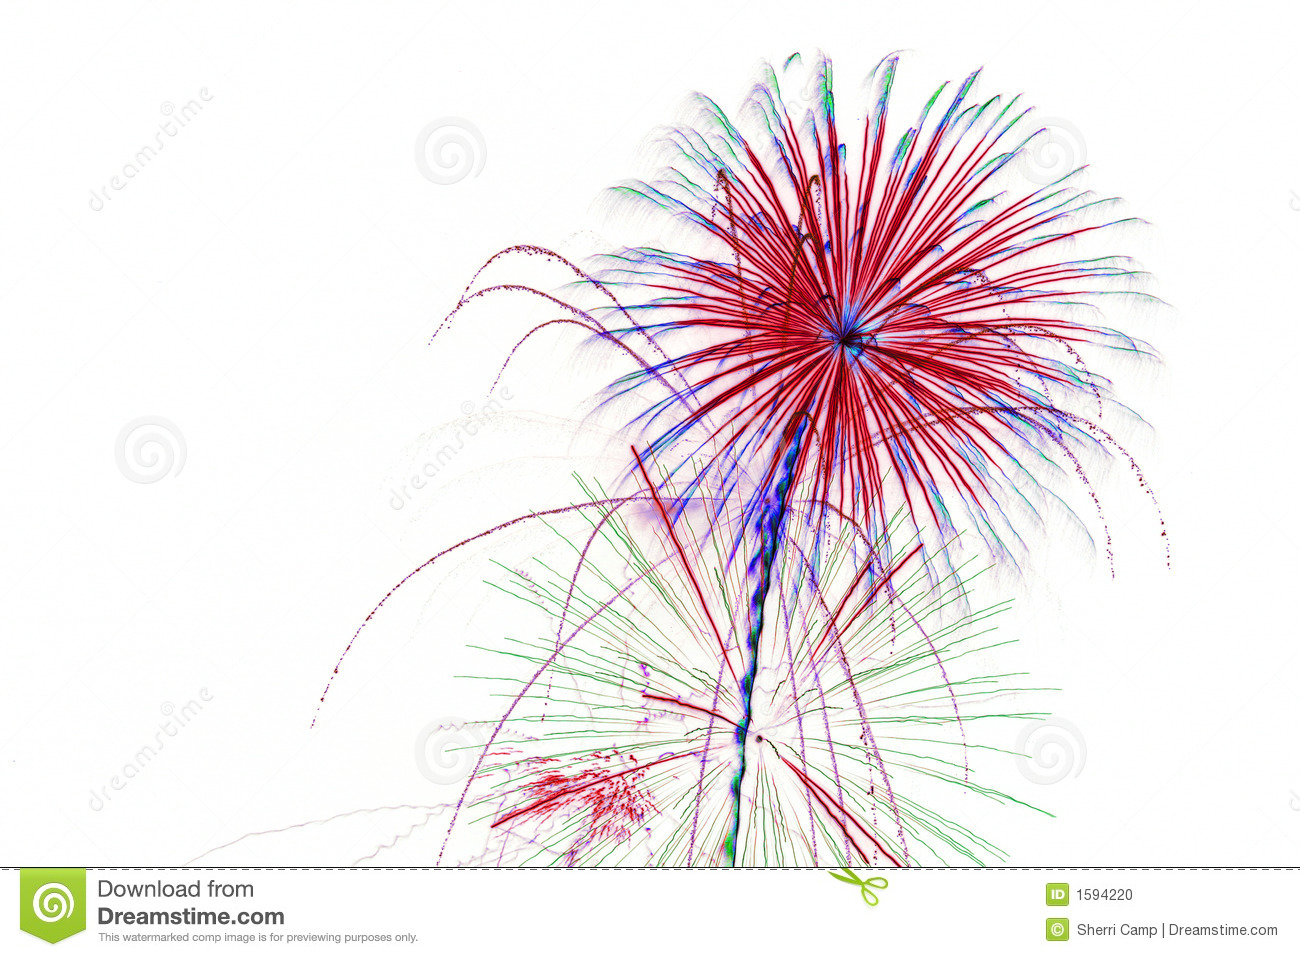 Fireworks On White Background Stock Photo - Image: 1594220